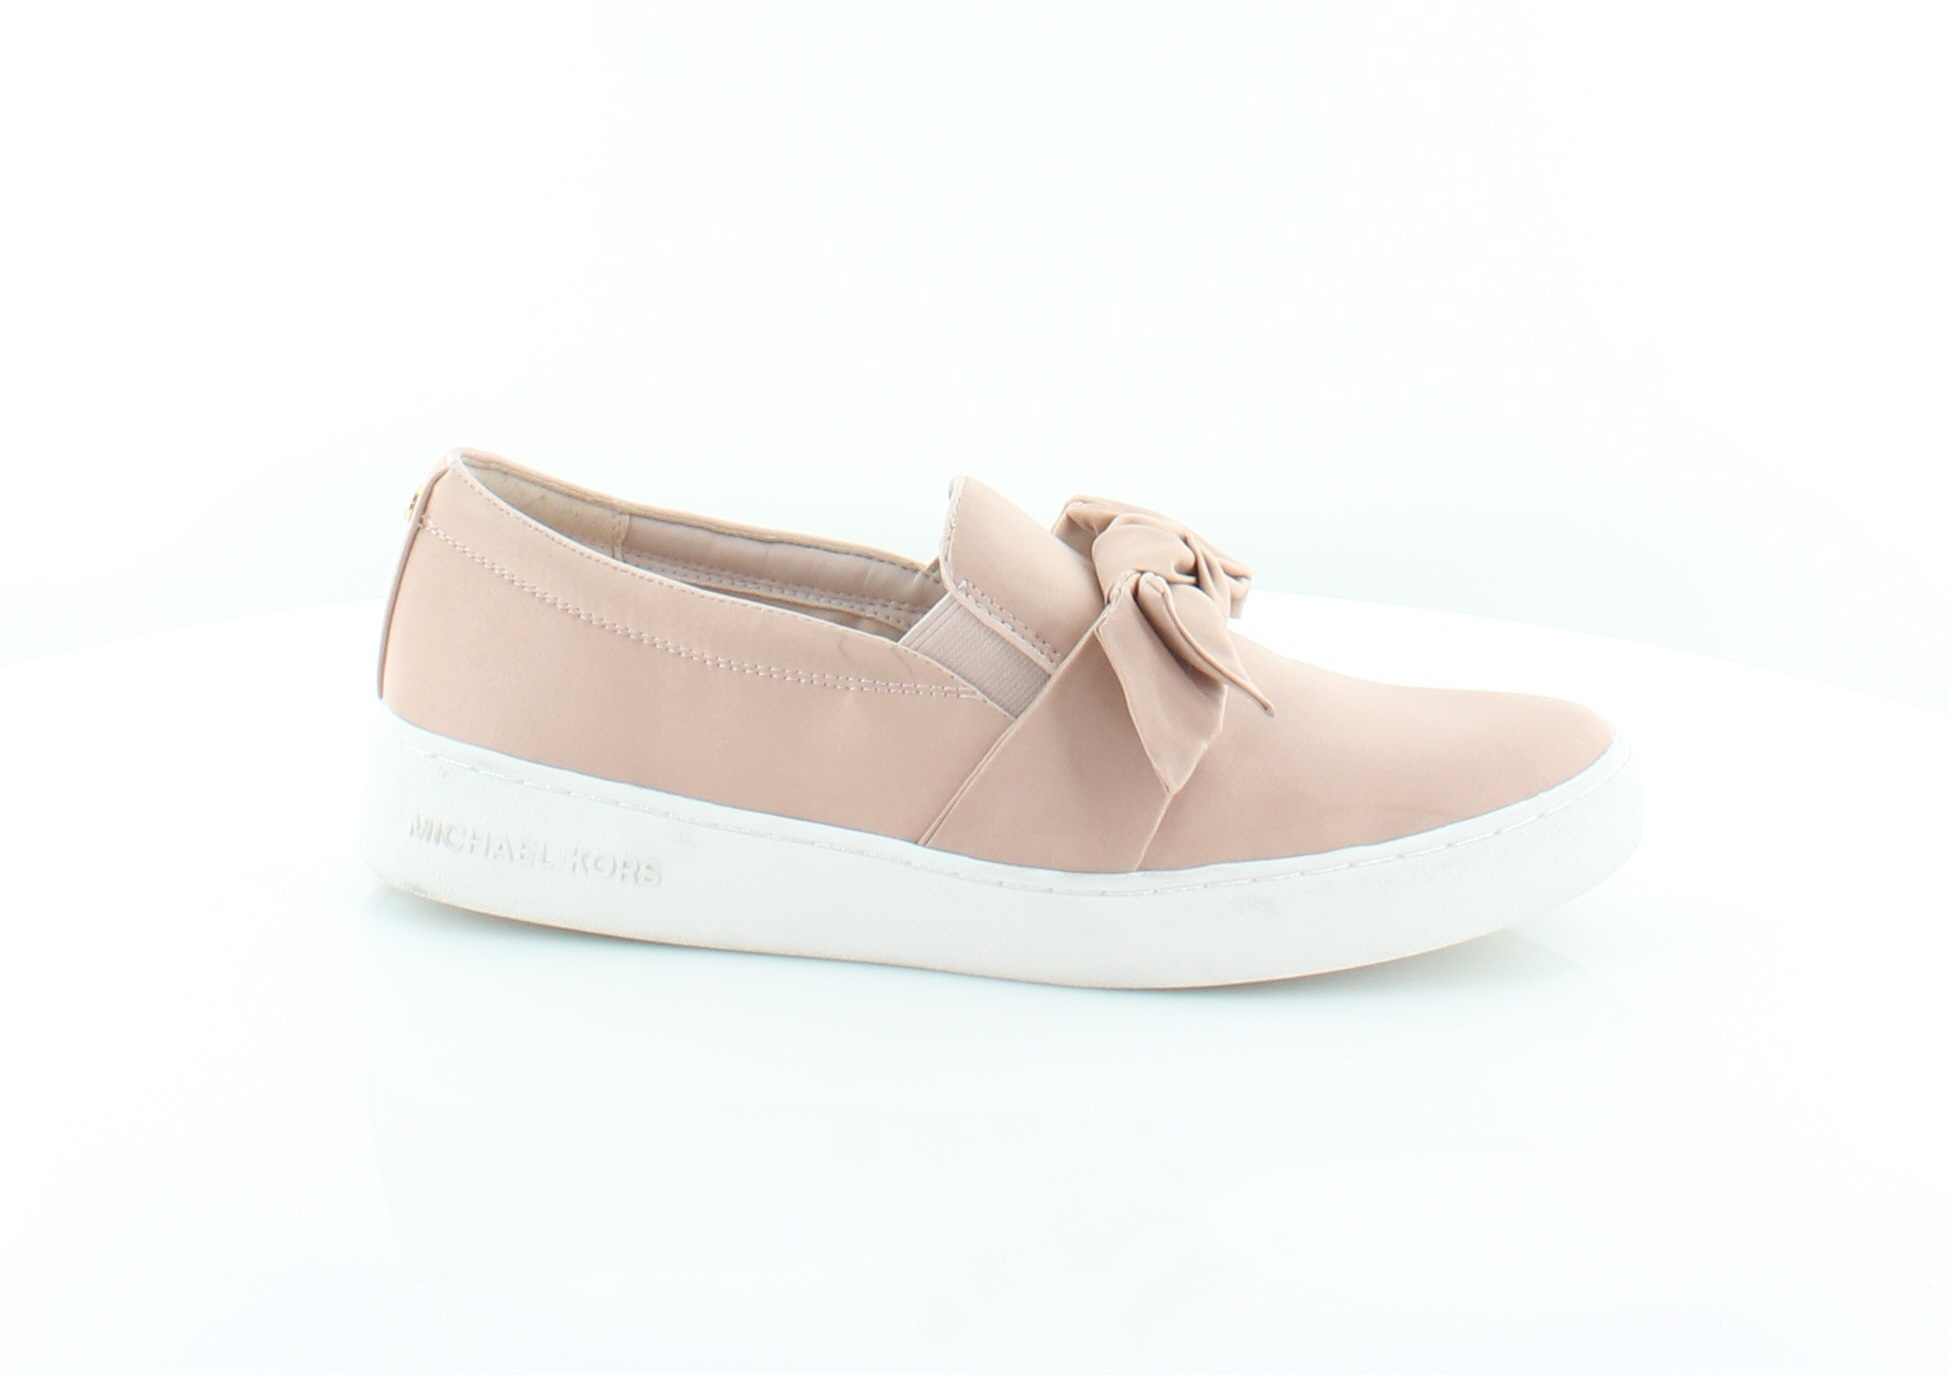 f16cce6dcbde Michael Kors Willa Slip On Pink Womens Shoes Size 9 M Flats MSRP ...